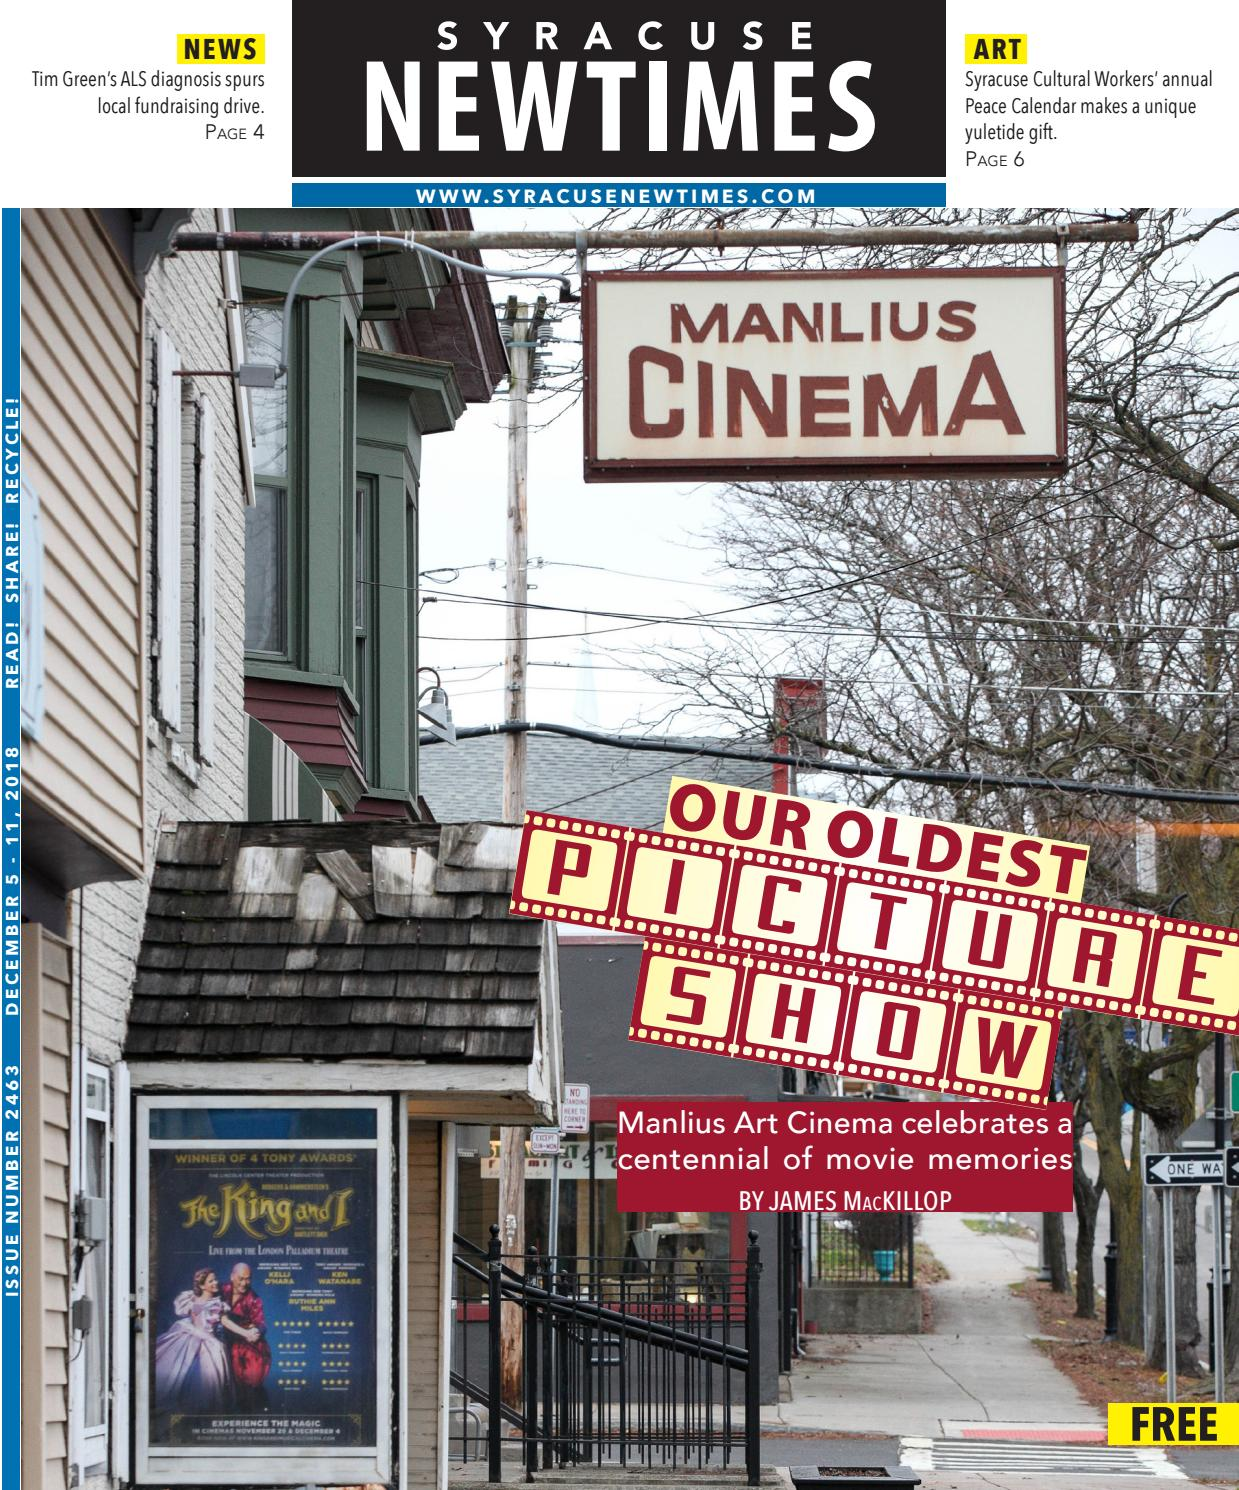 Groovy Syracuse New Times 12 5 18 By Syracuse New Times Issuu Download Free Architecture Designs Embacsunscenecom